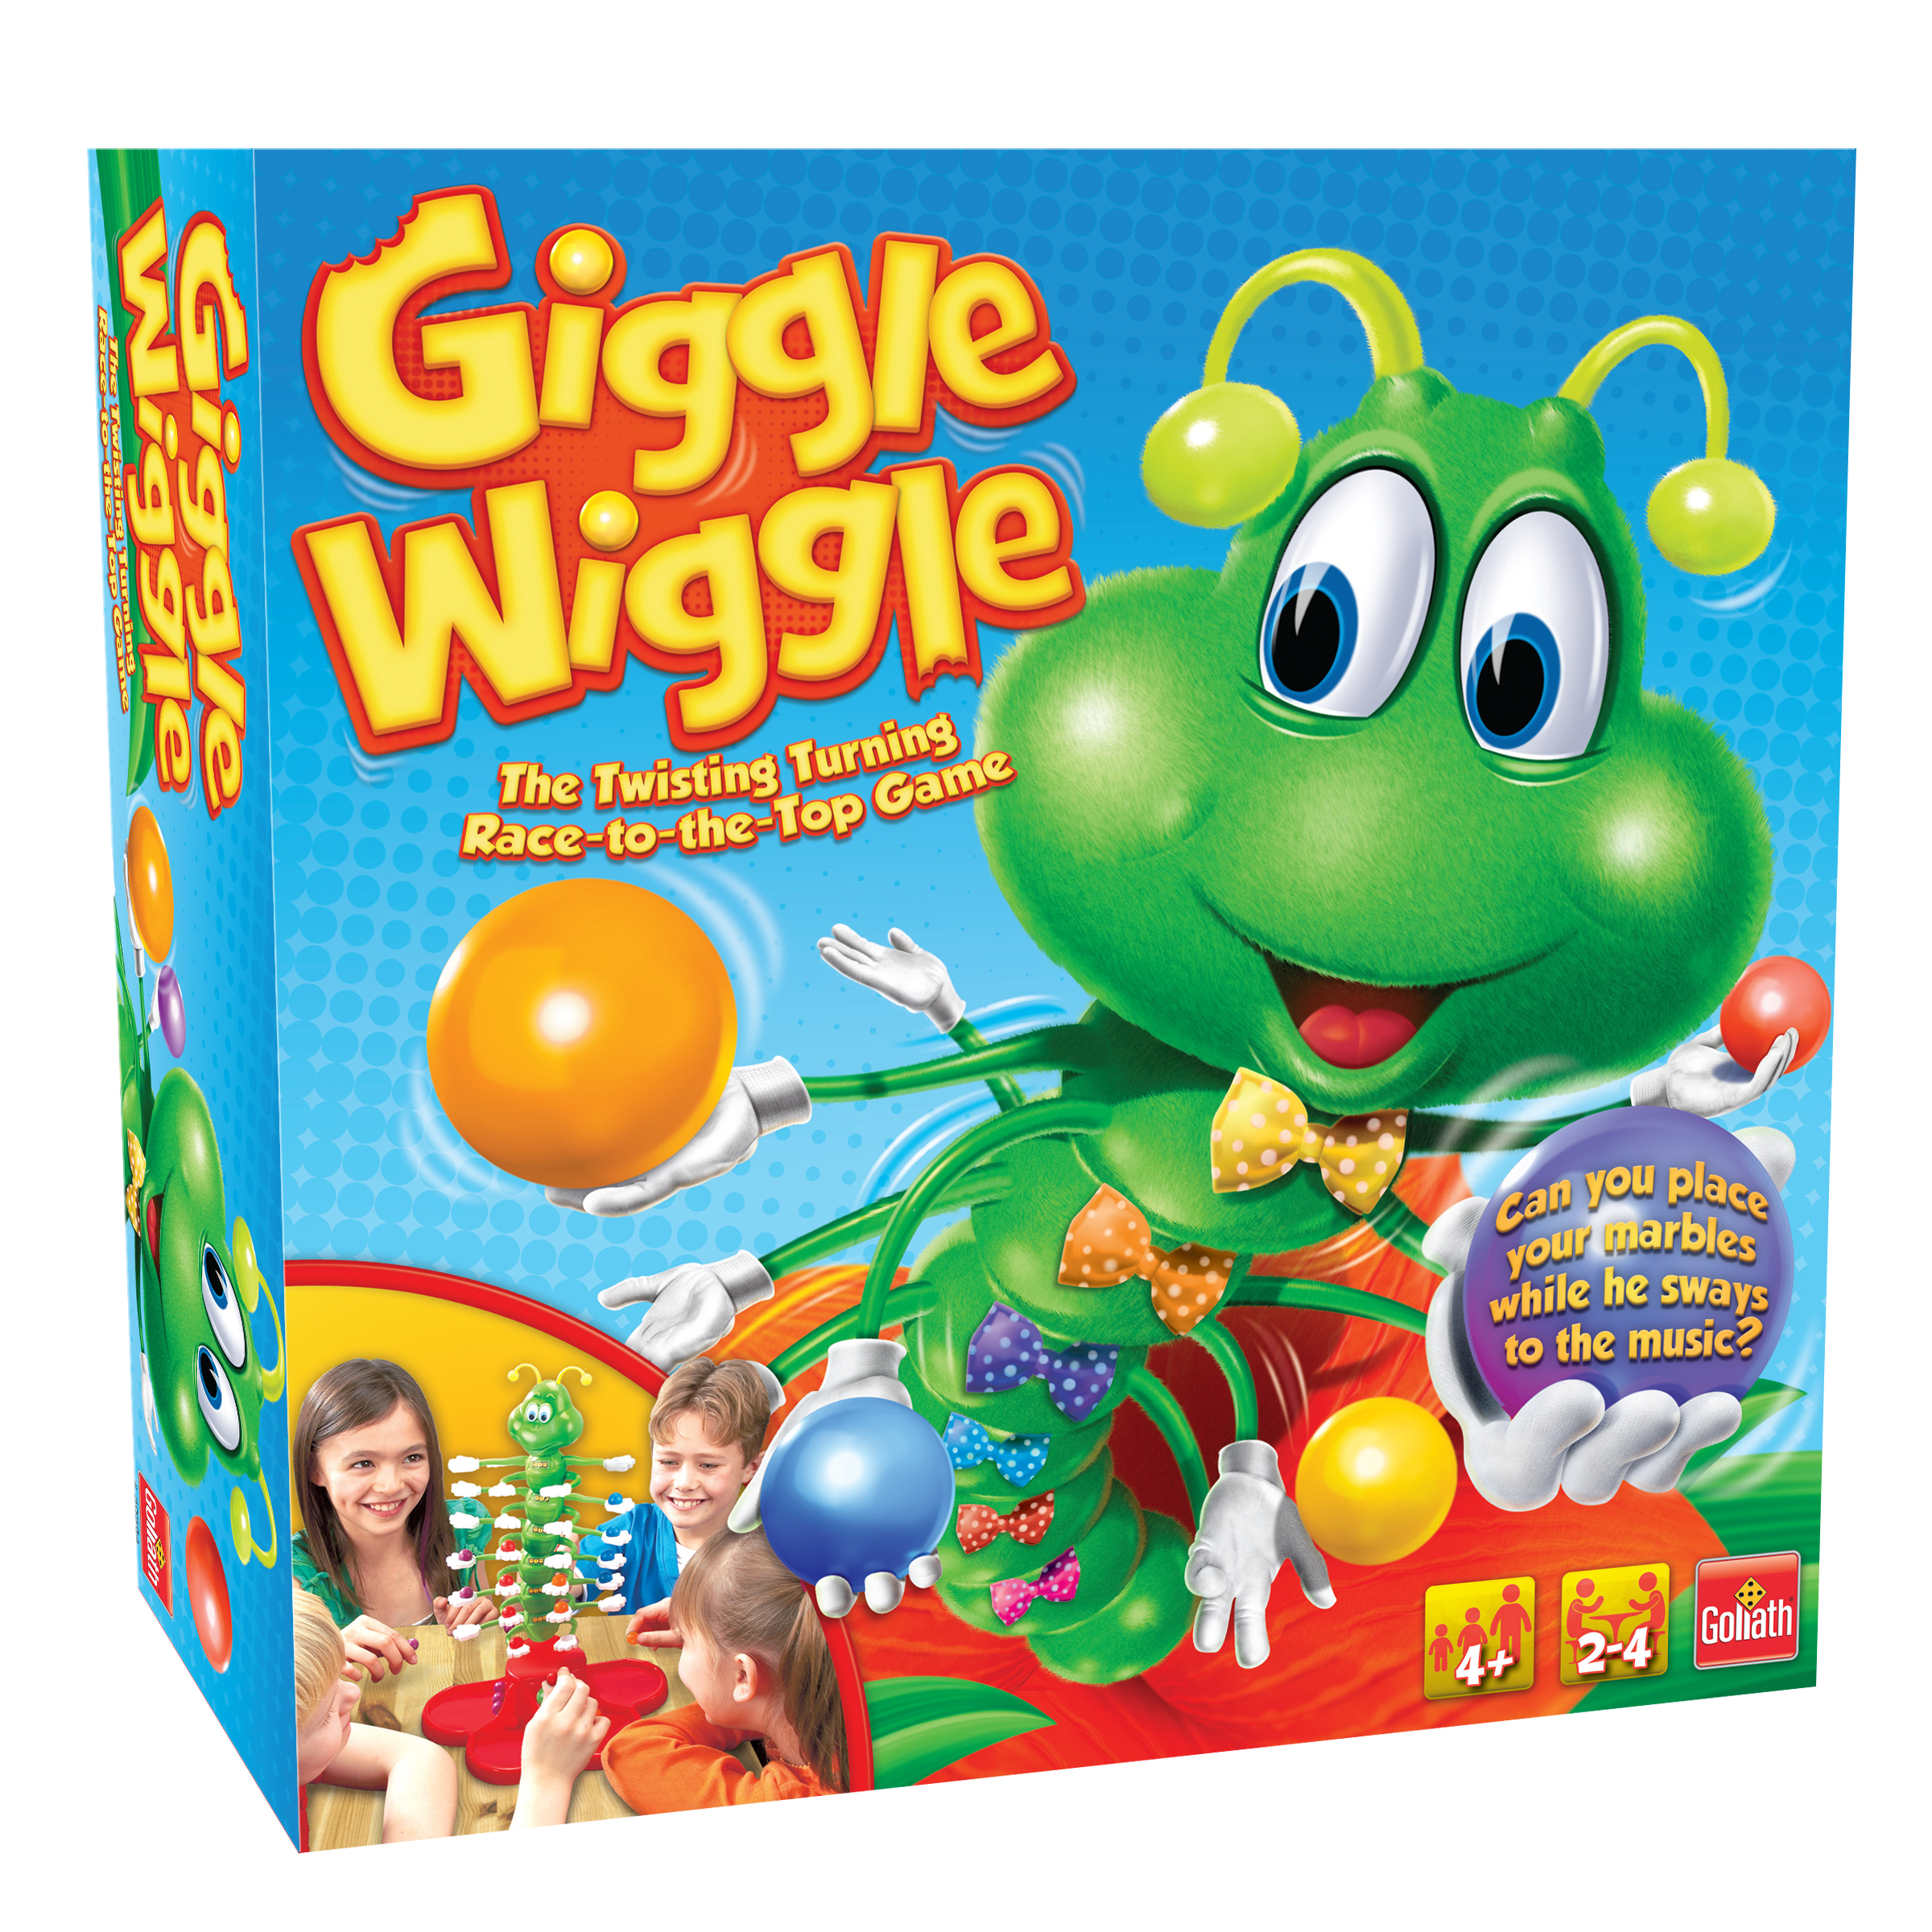 Goliath Games Giggle Wiggle Kids Game Ages 4 and Up by Goliath Games, LLC